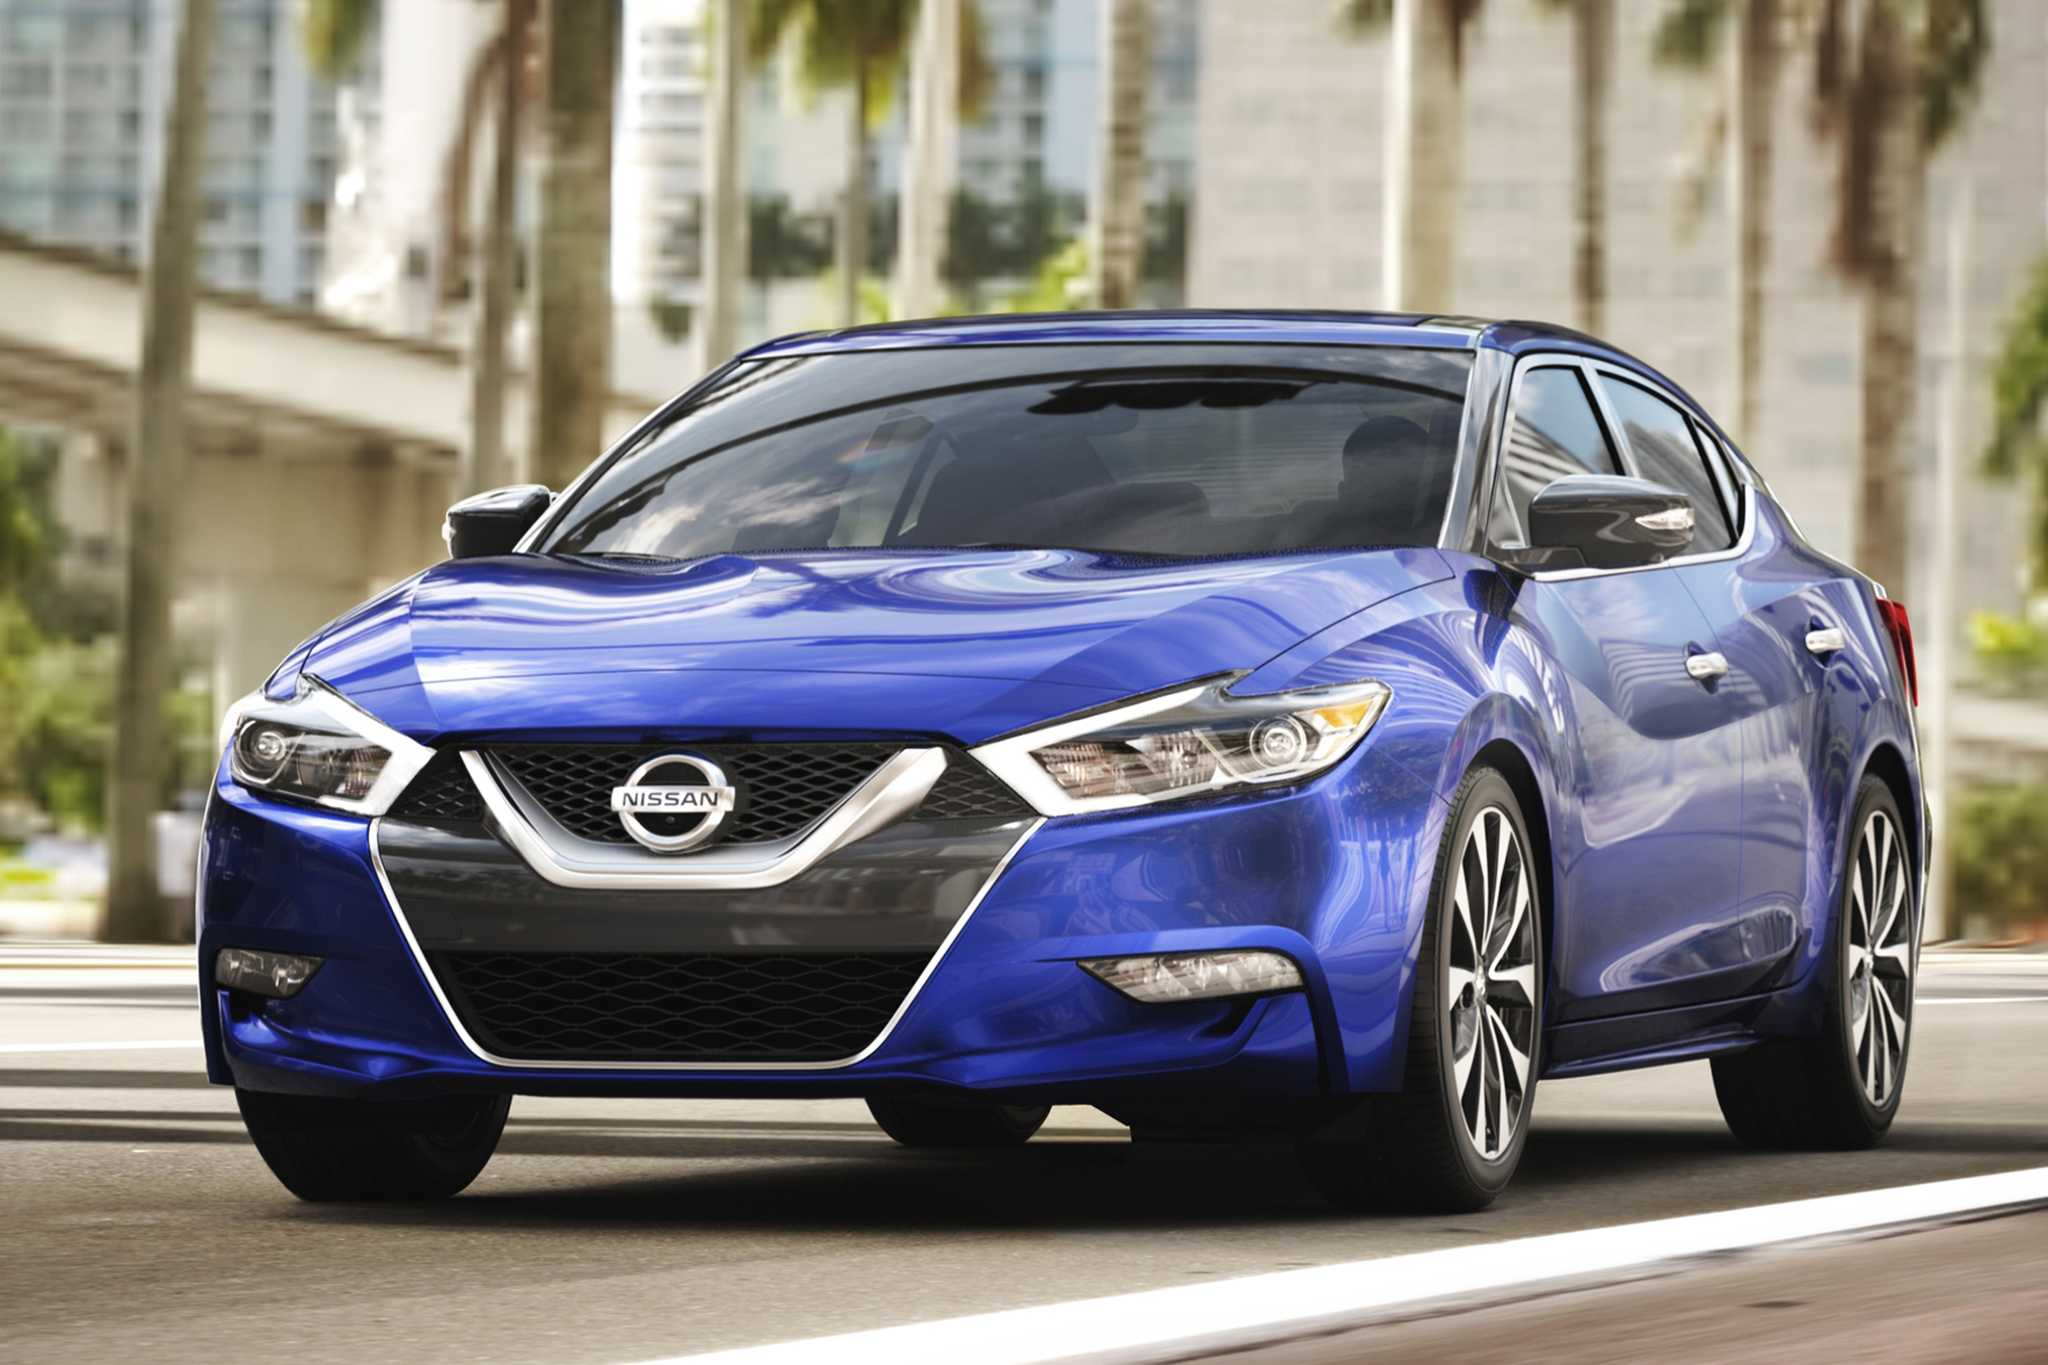 2017 Nissan Maxima Gets New Packages, Includes Apple CarPlay Support